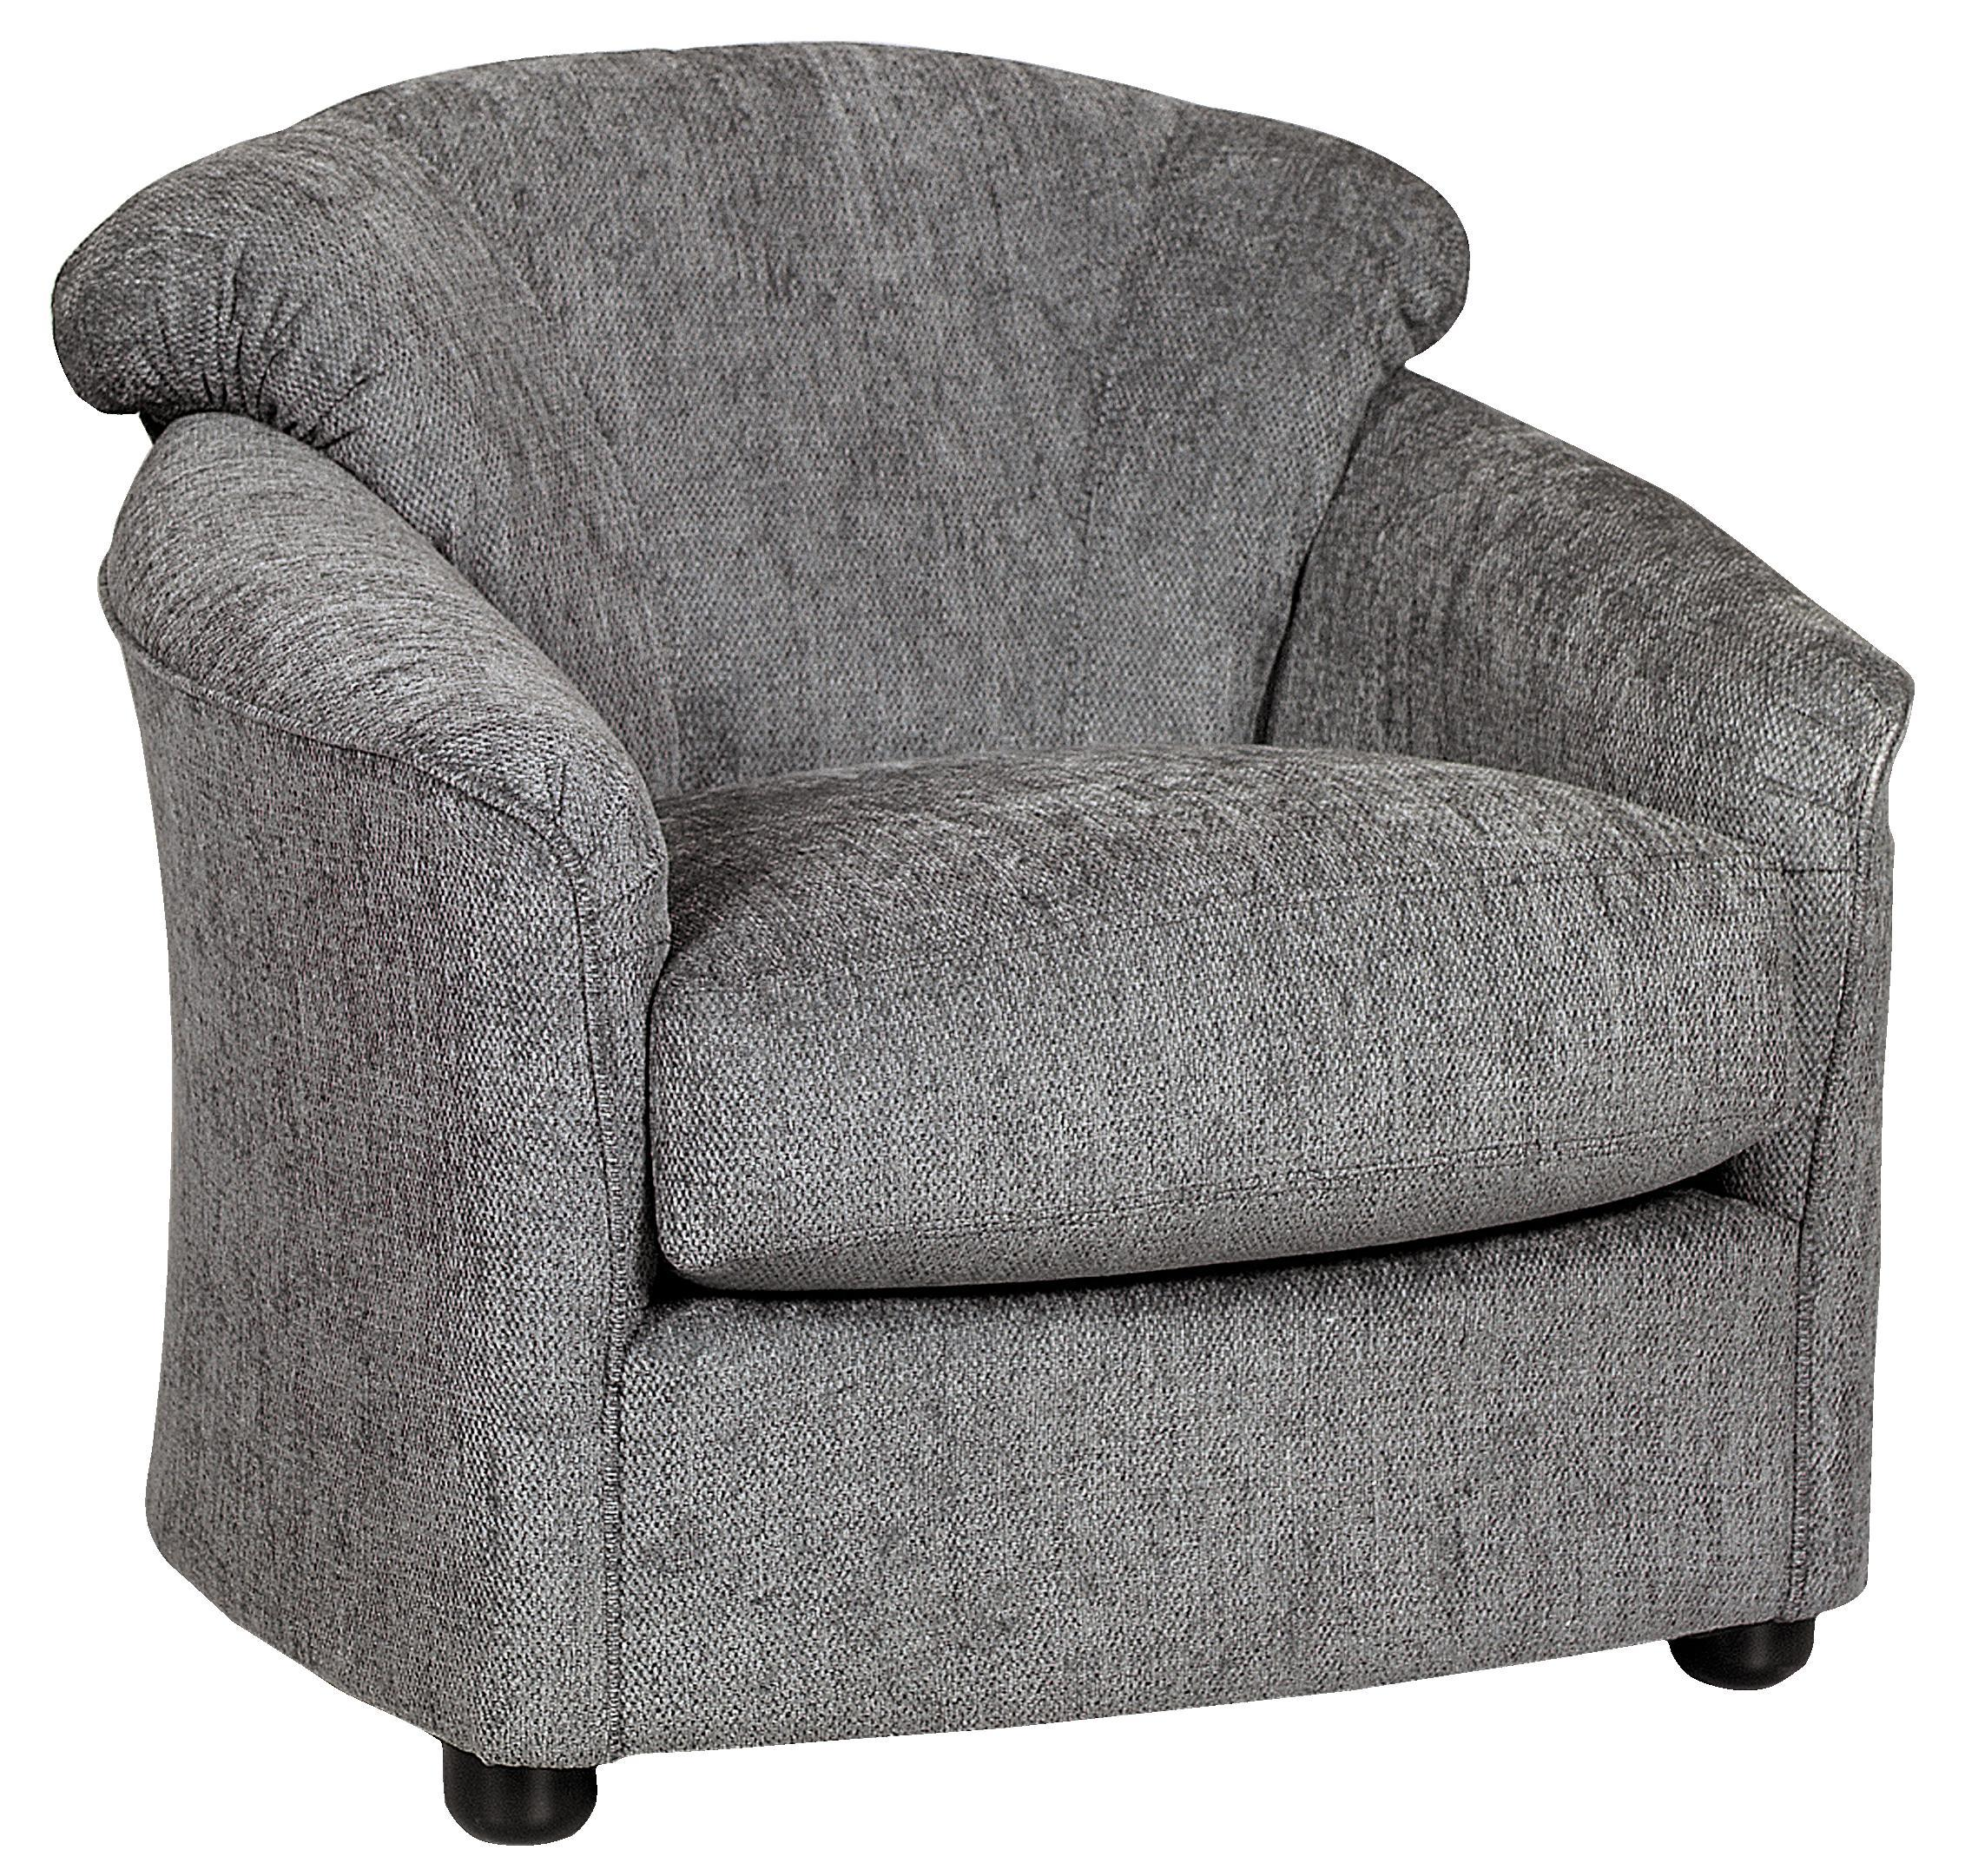 Swivel Upholstered Chair by Klaussner at Johnny Janosik